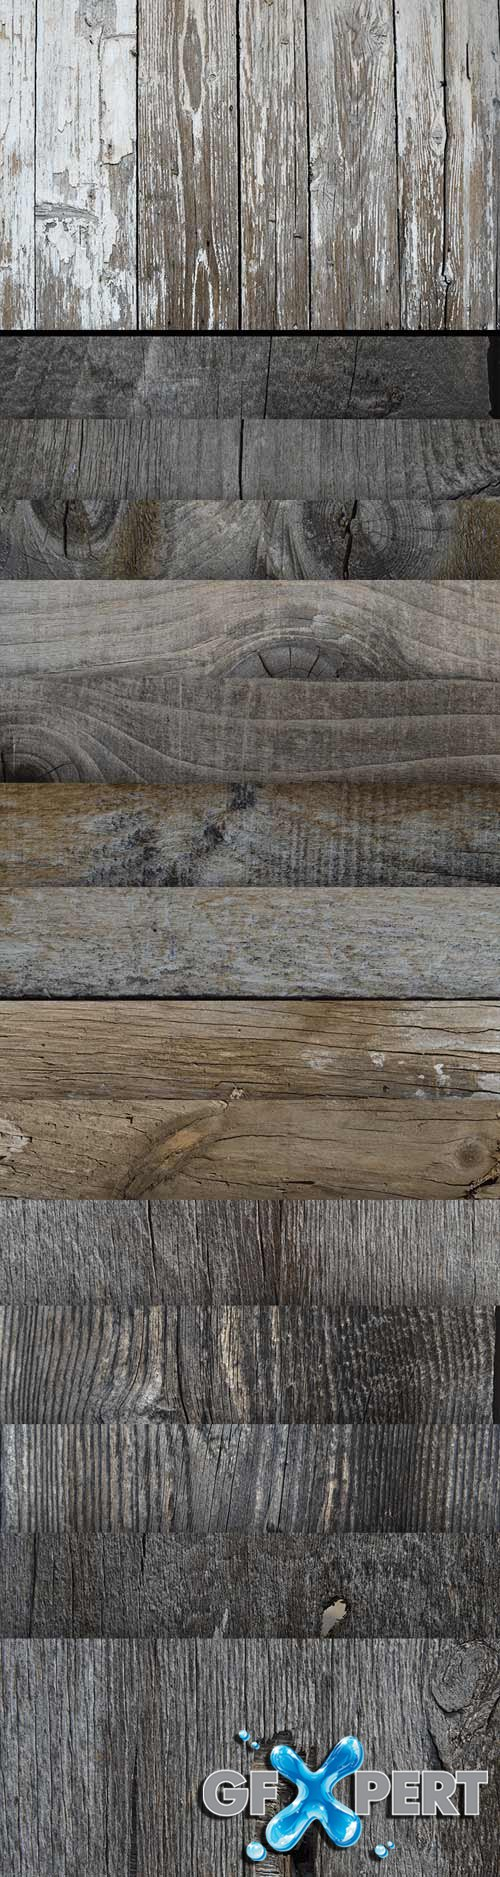 15 High Res Textures - Wood V1